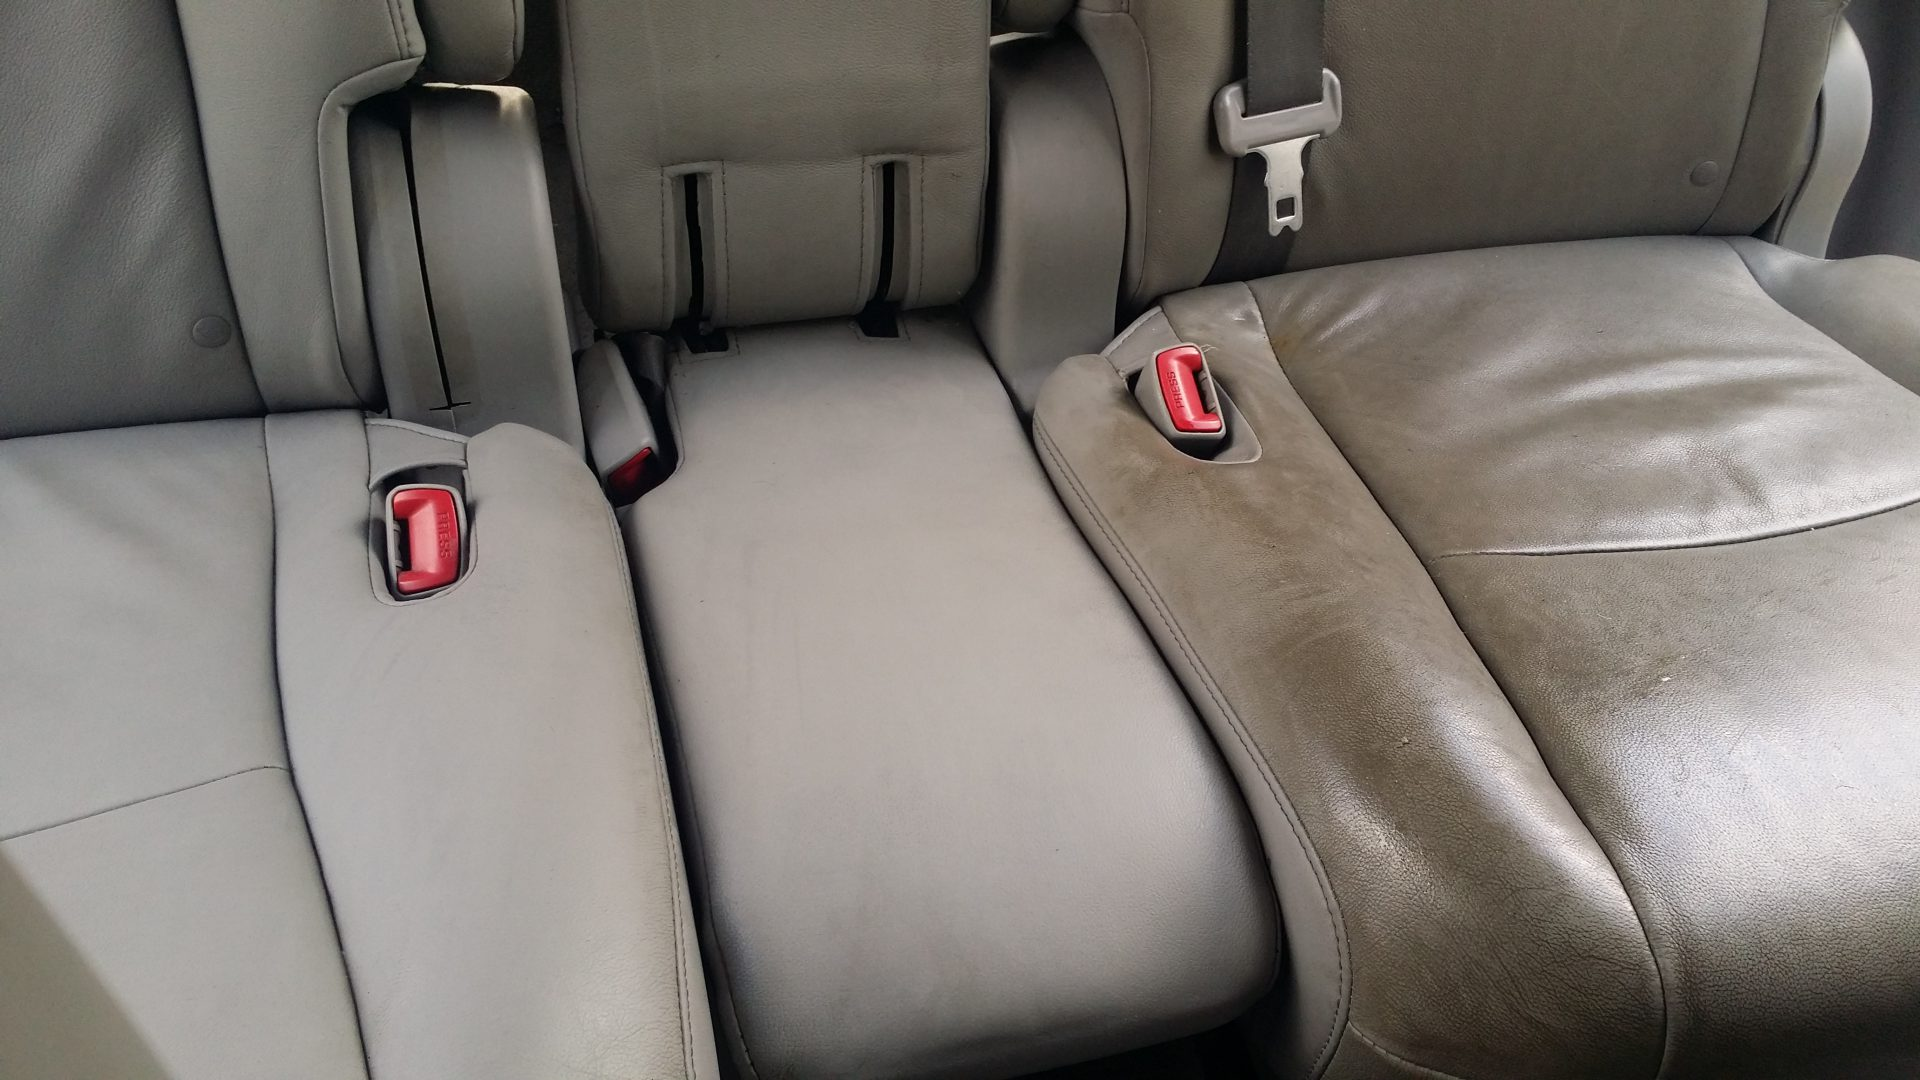 Steam cleaning leather car seats Best cleaner for car interior seats